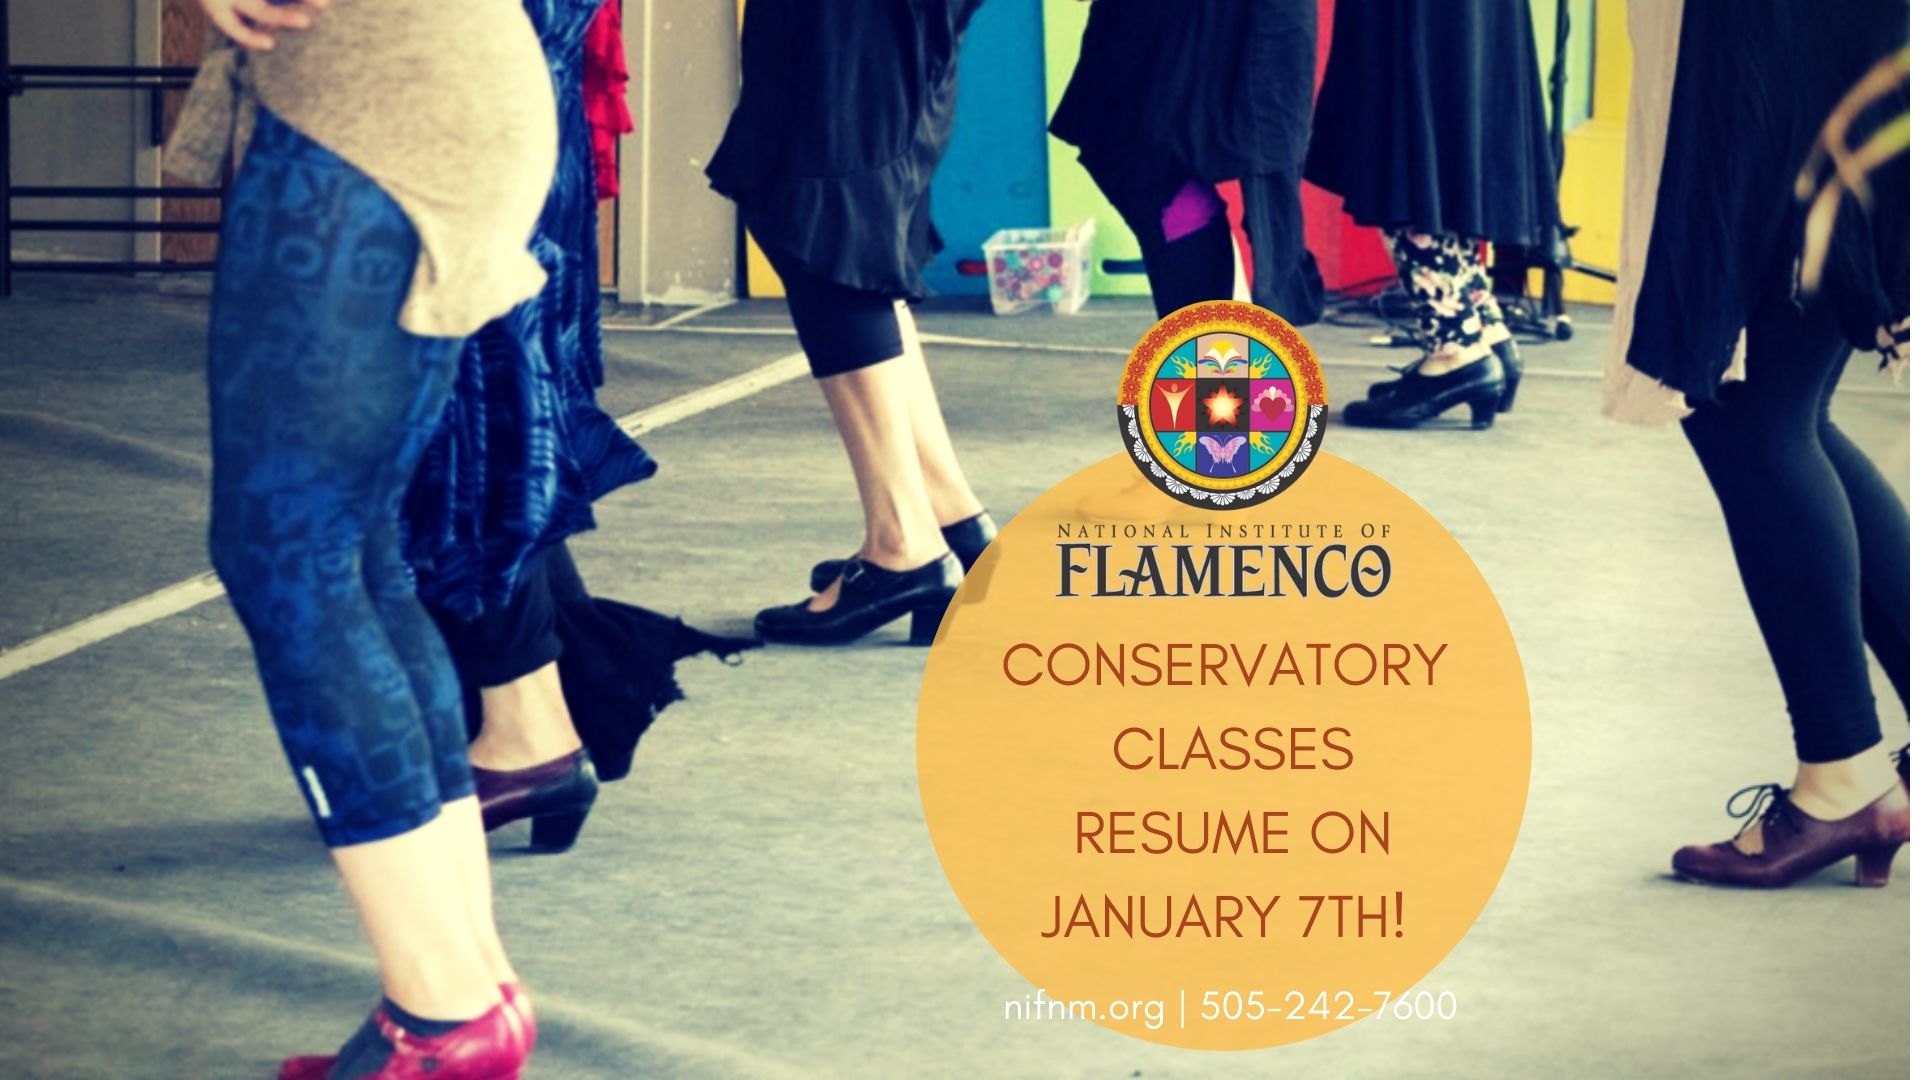 CONSERVATORY CLASSES RESUME ON JANUARY 7TH!.jpg